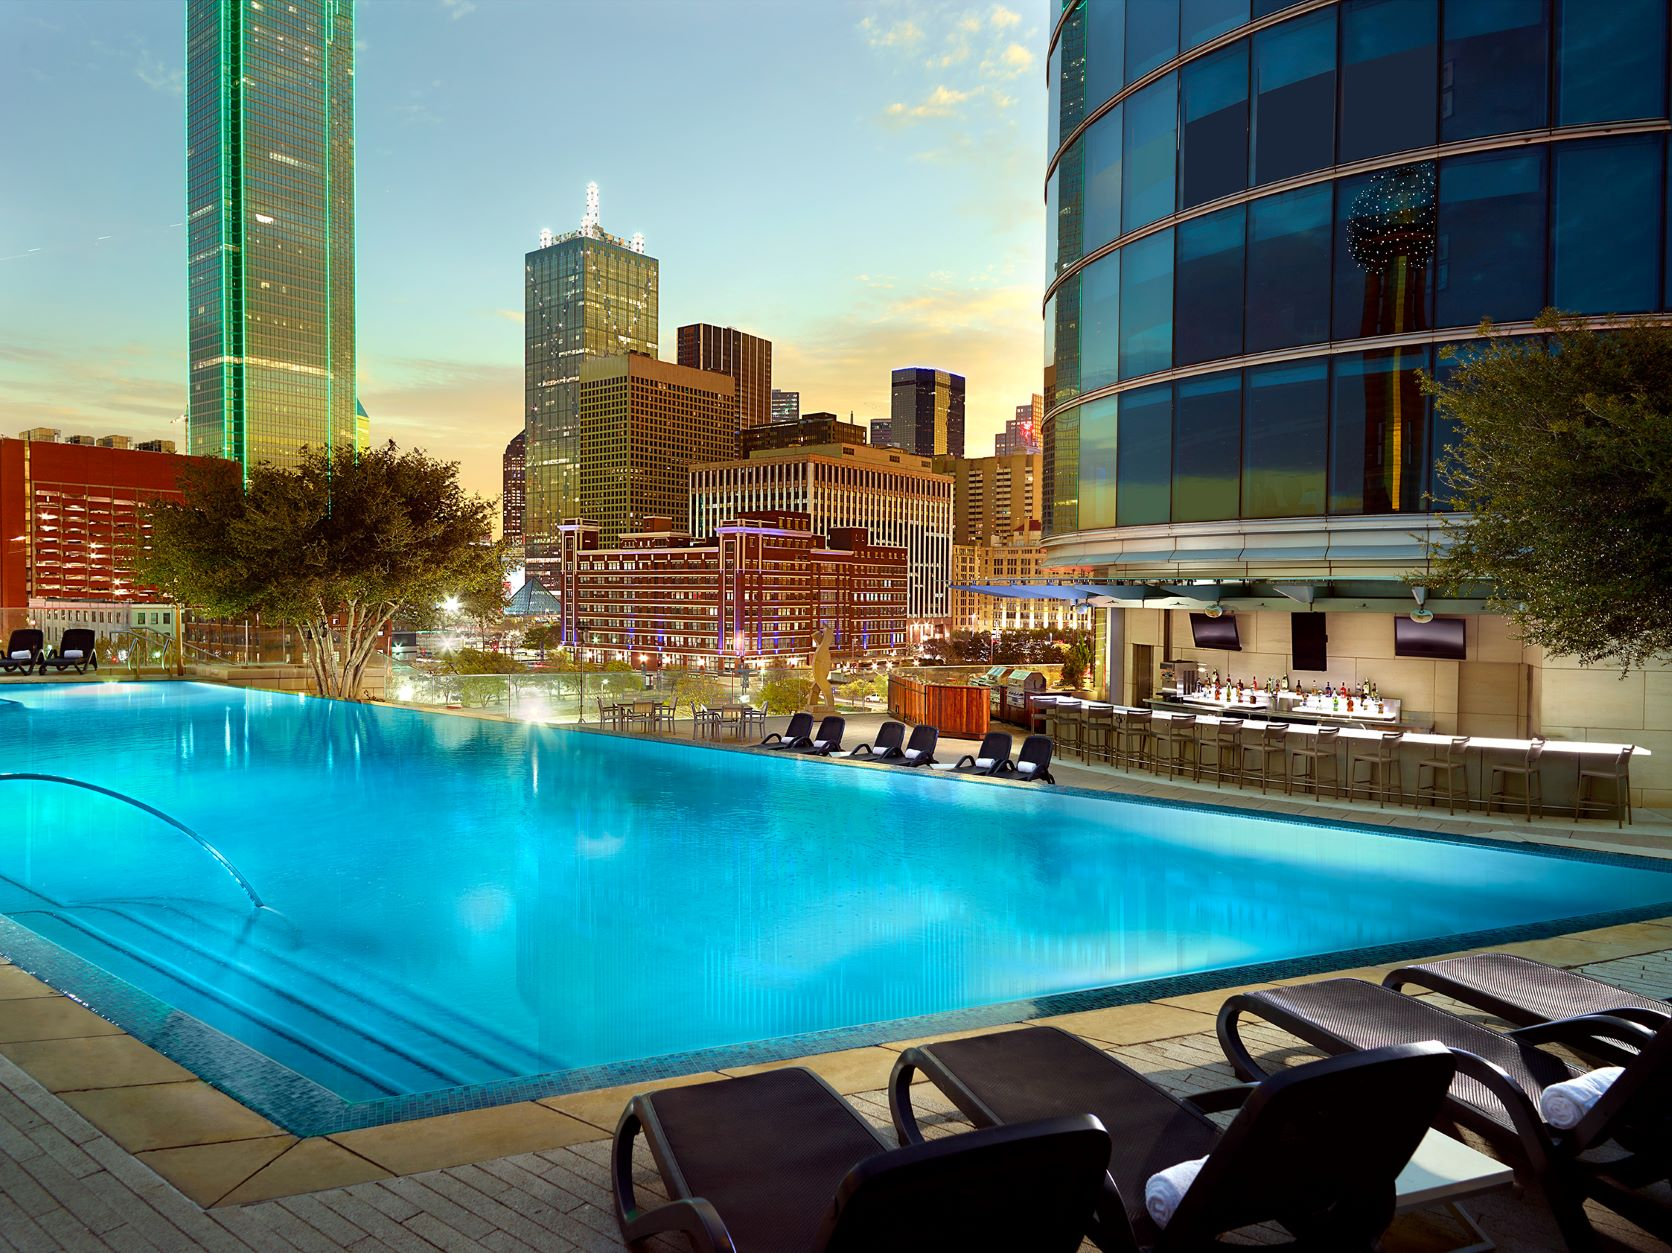 Roof top pool in Dallas